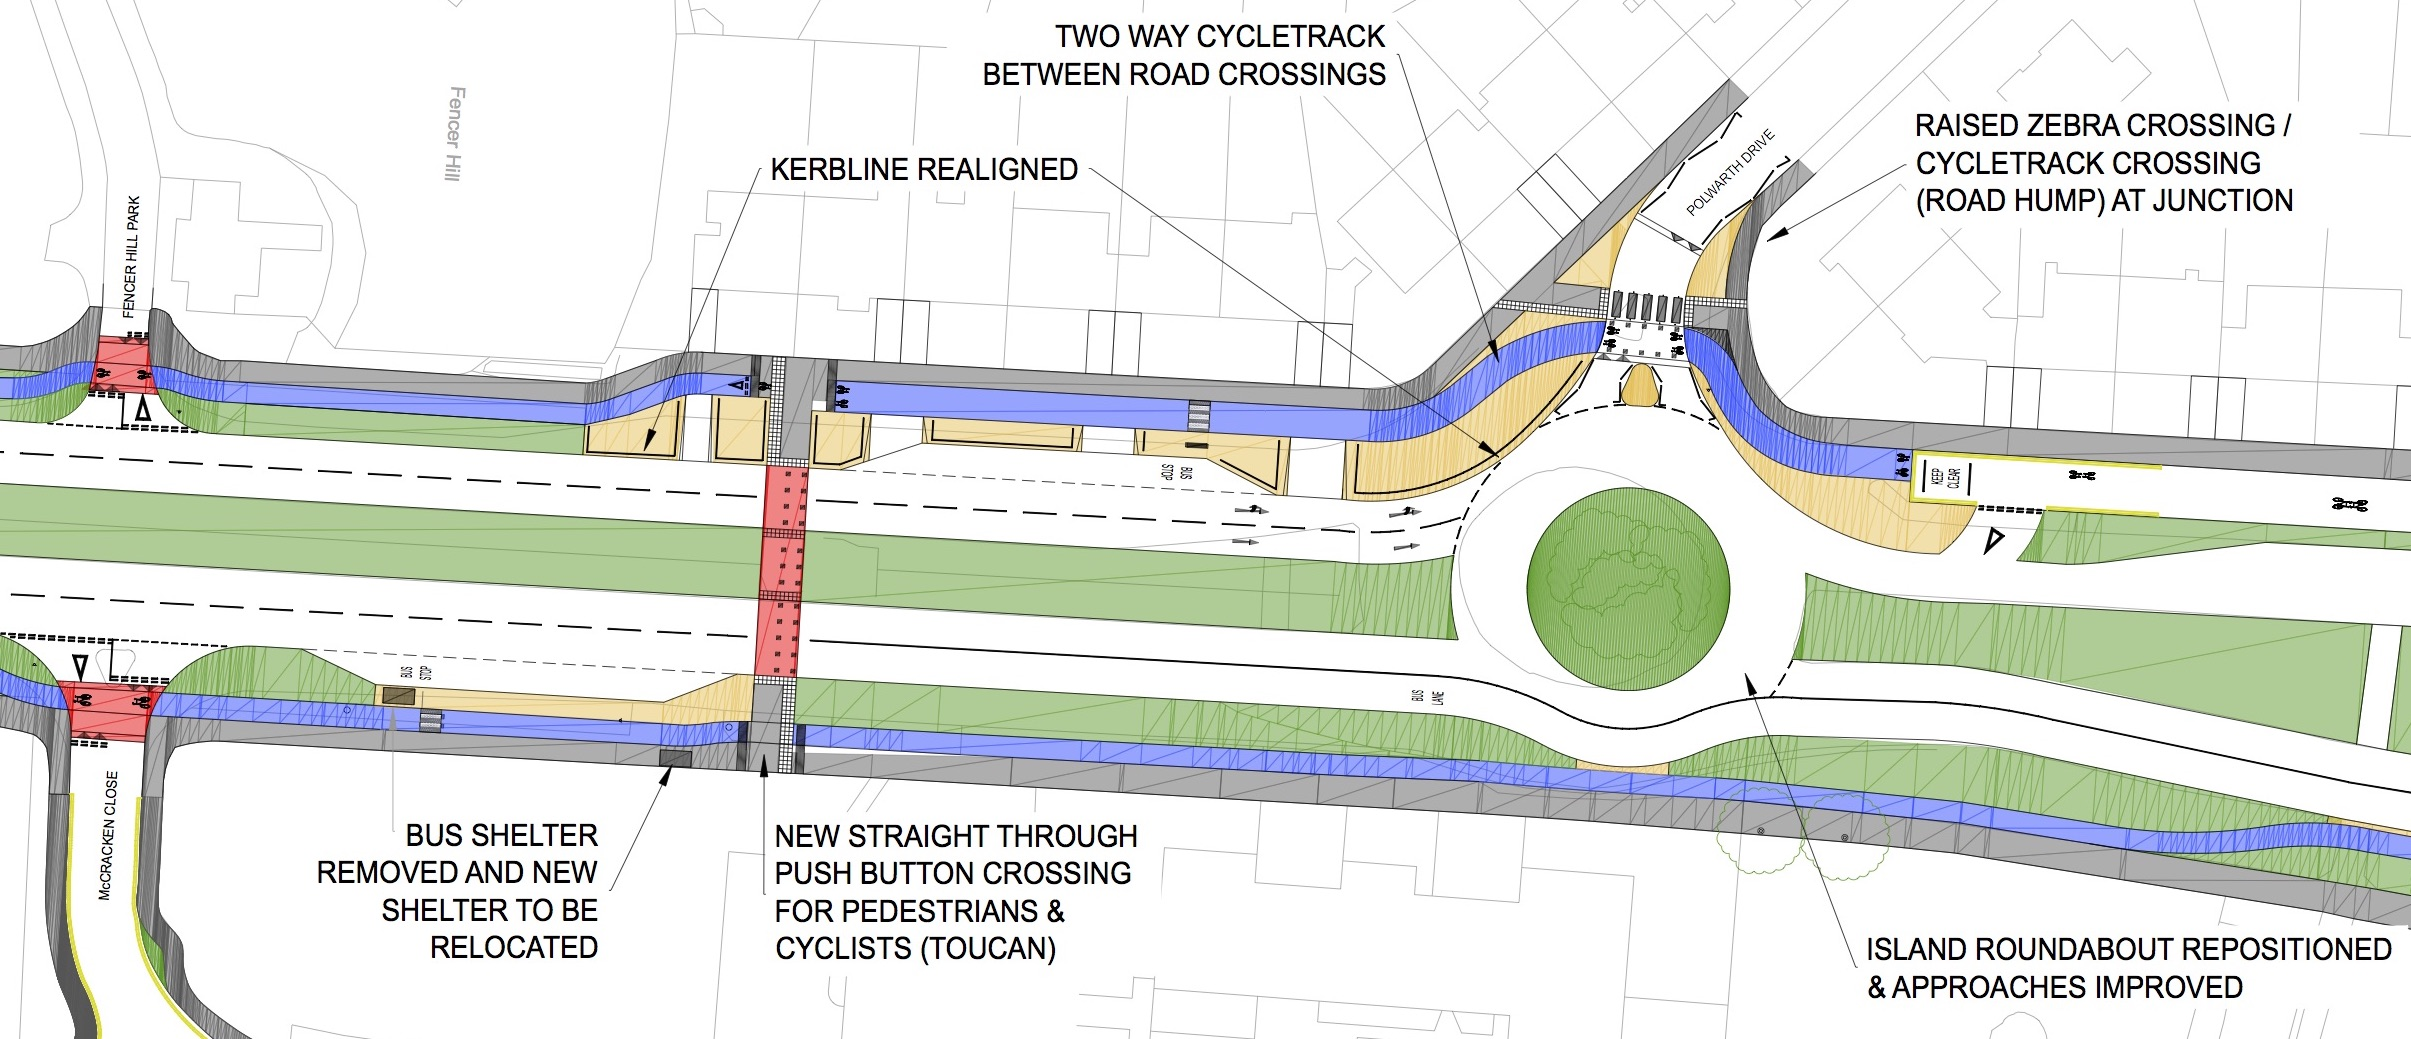 Plan of the cycle lane - described in the article text